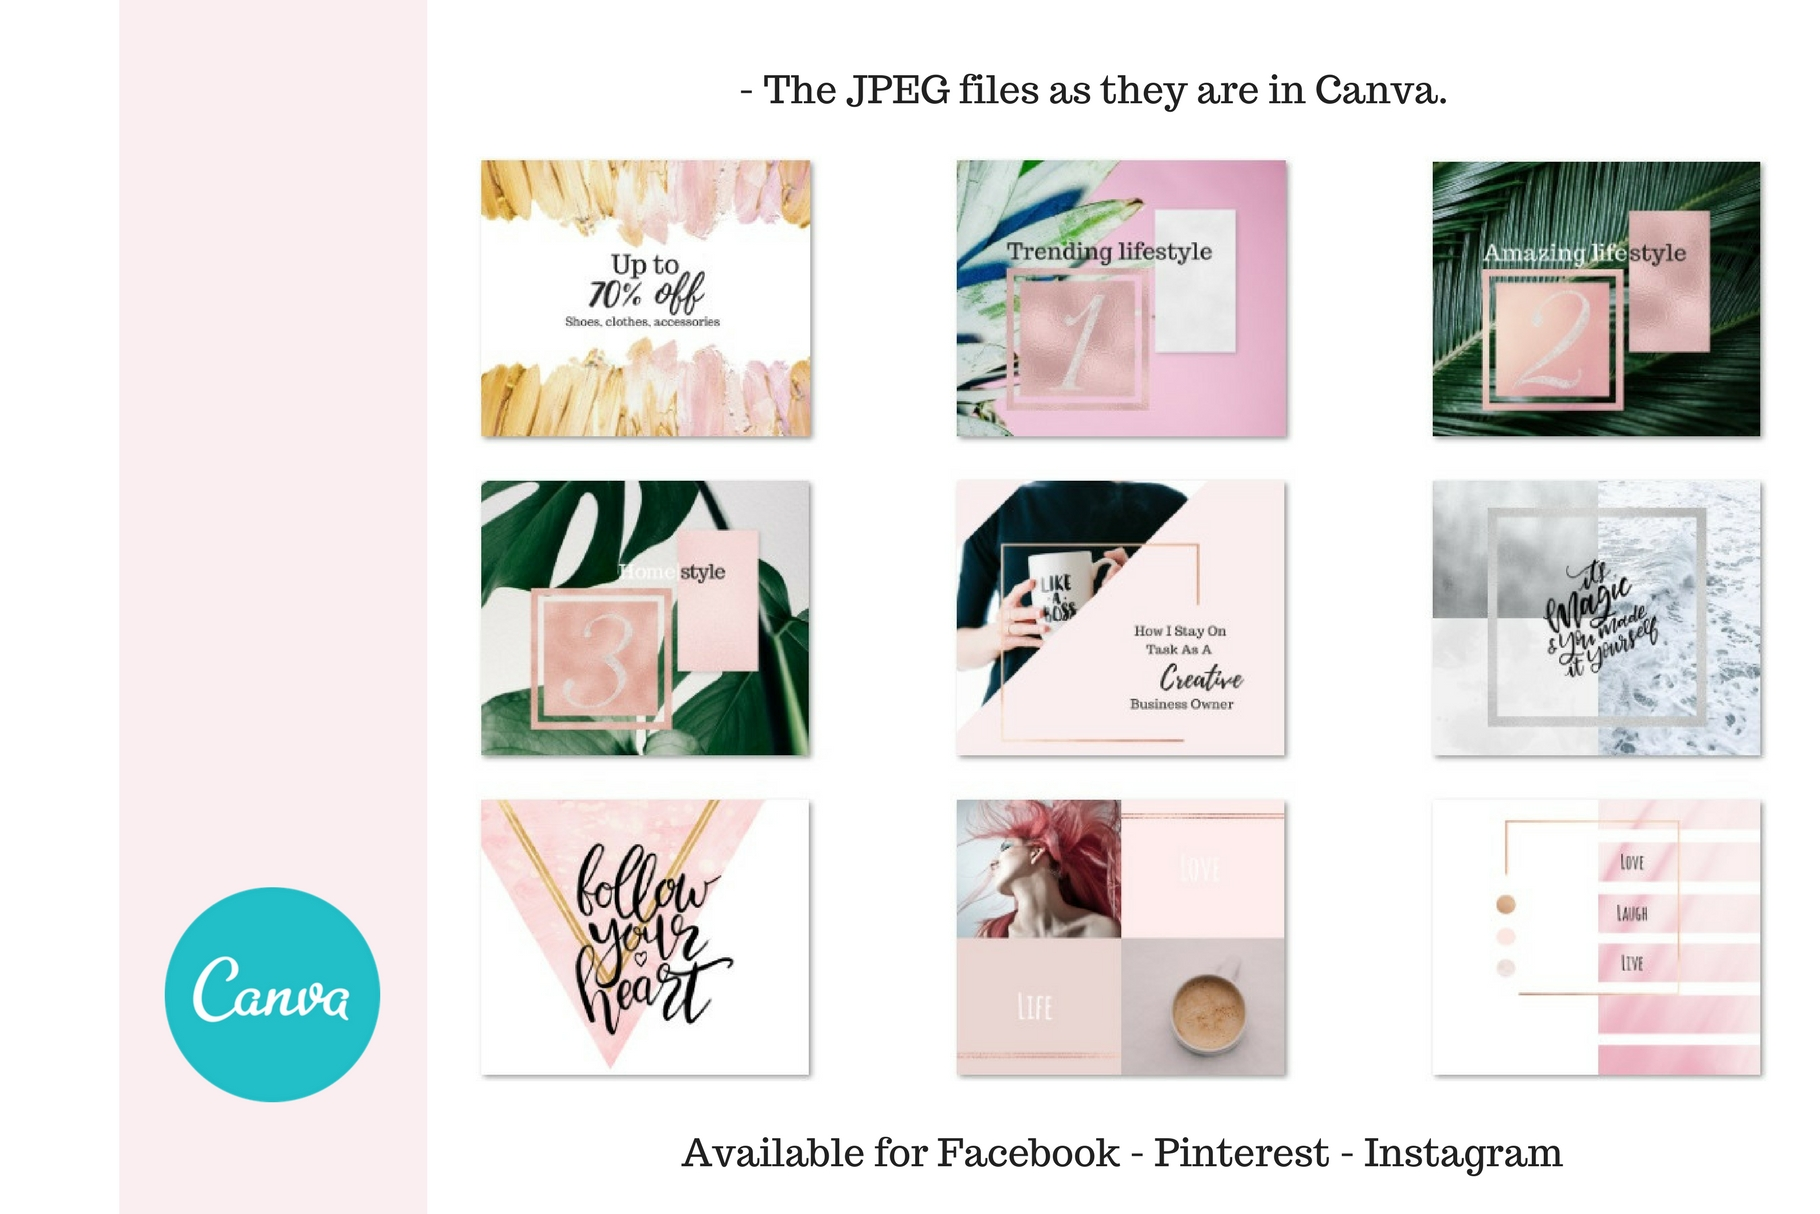 Canva for you - Social media example image 5